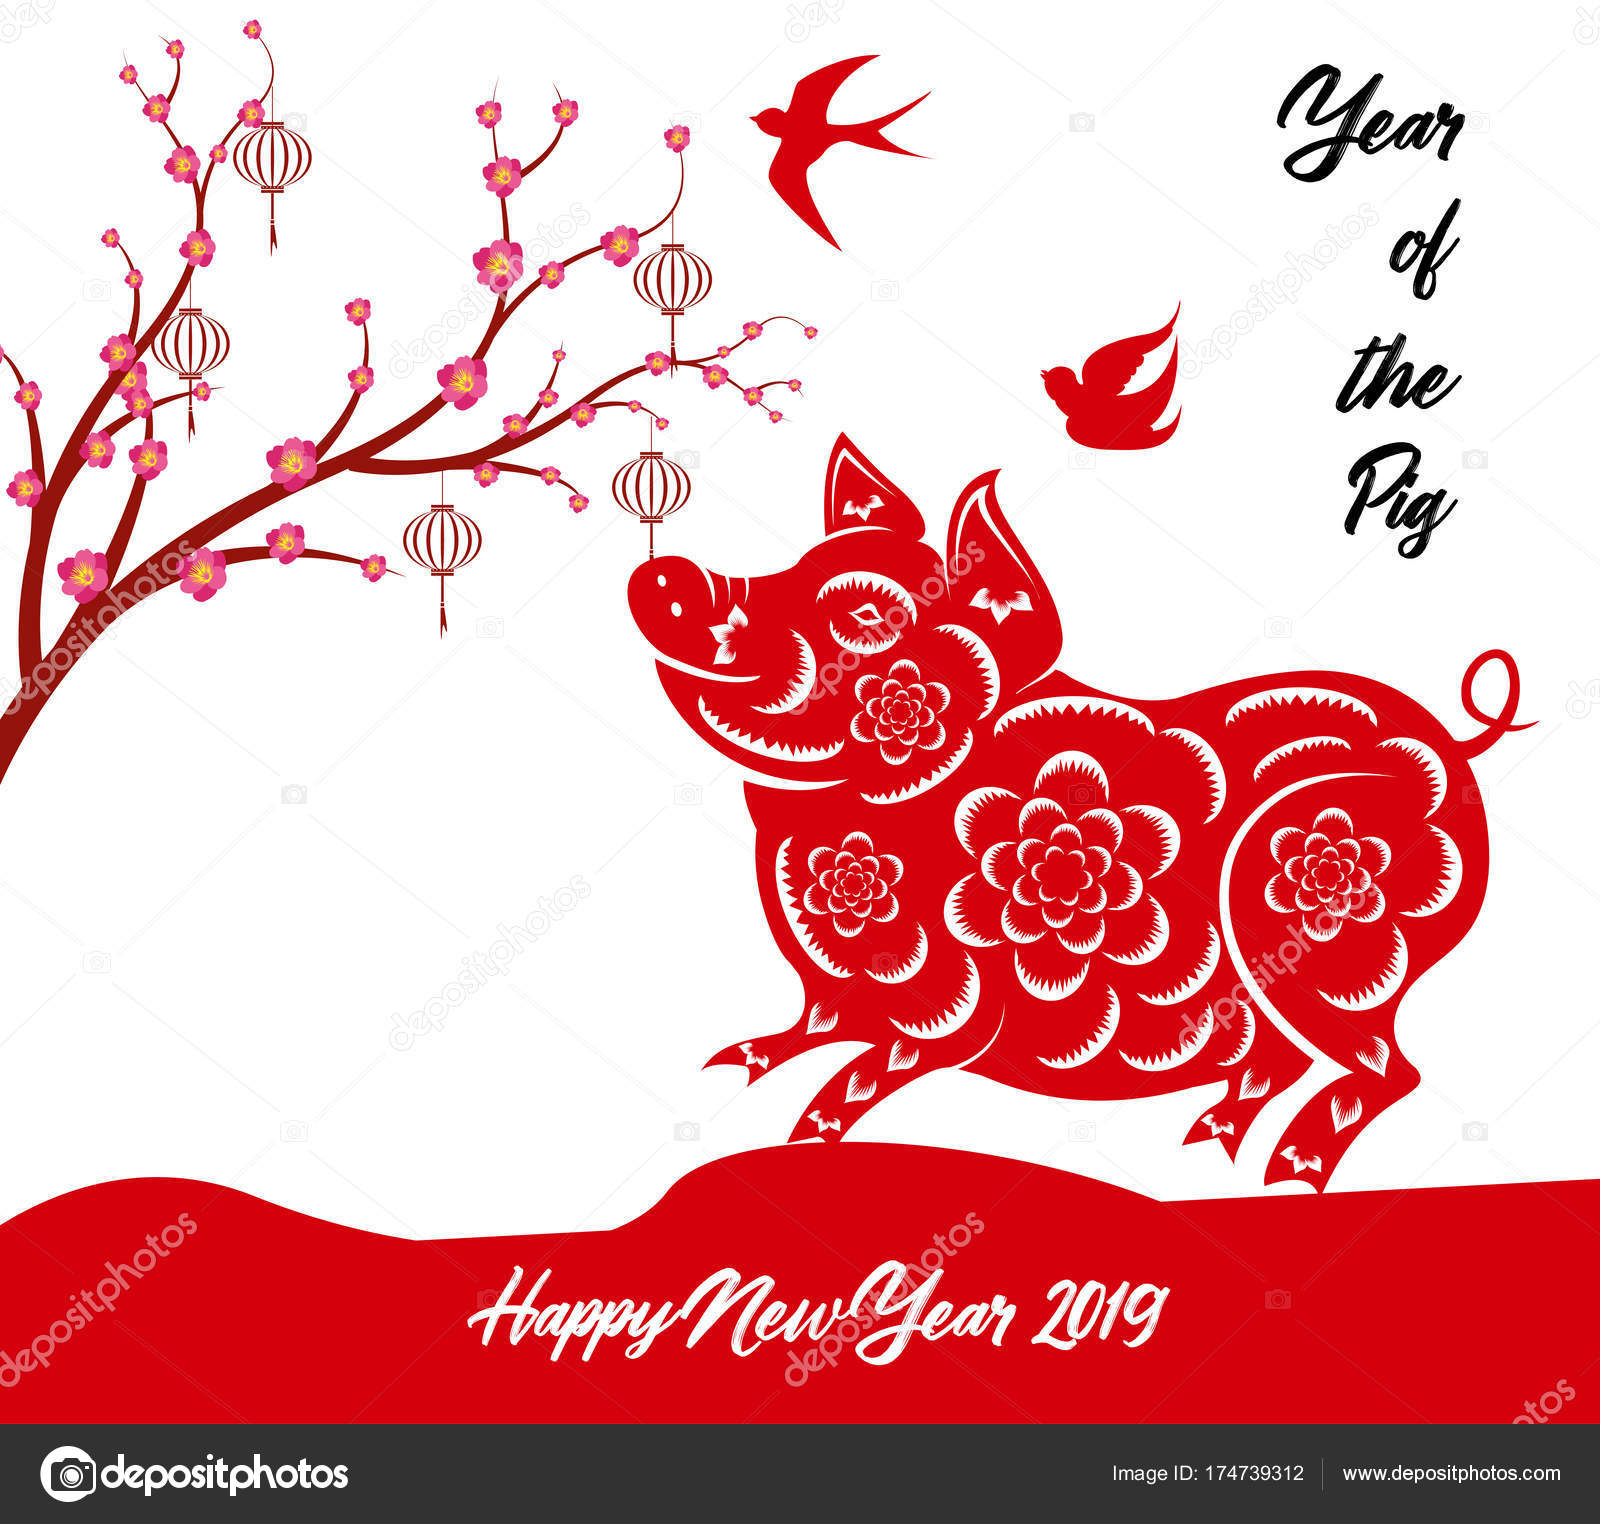 Chinese New Year Pig Borders Clipart & Clip Art Images #11338.